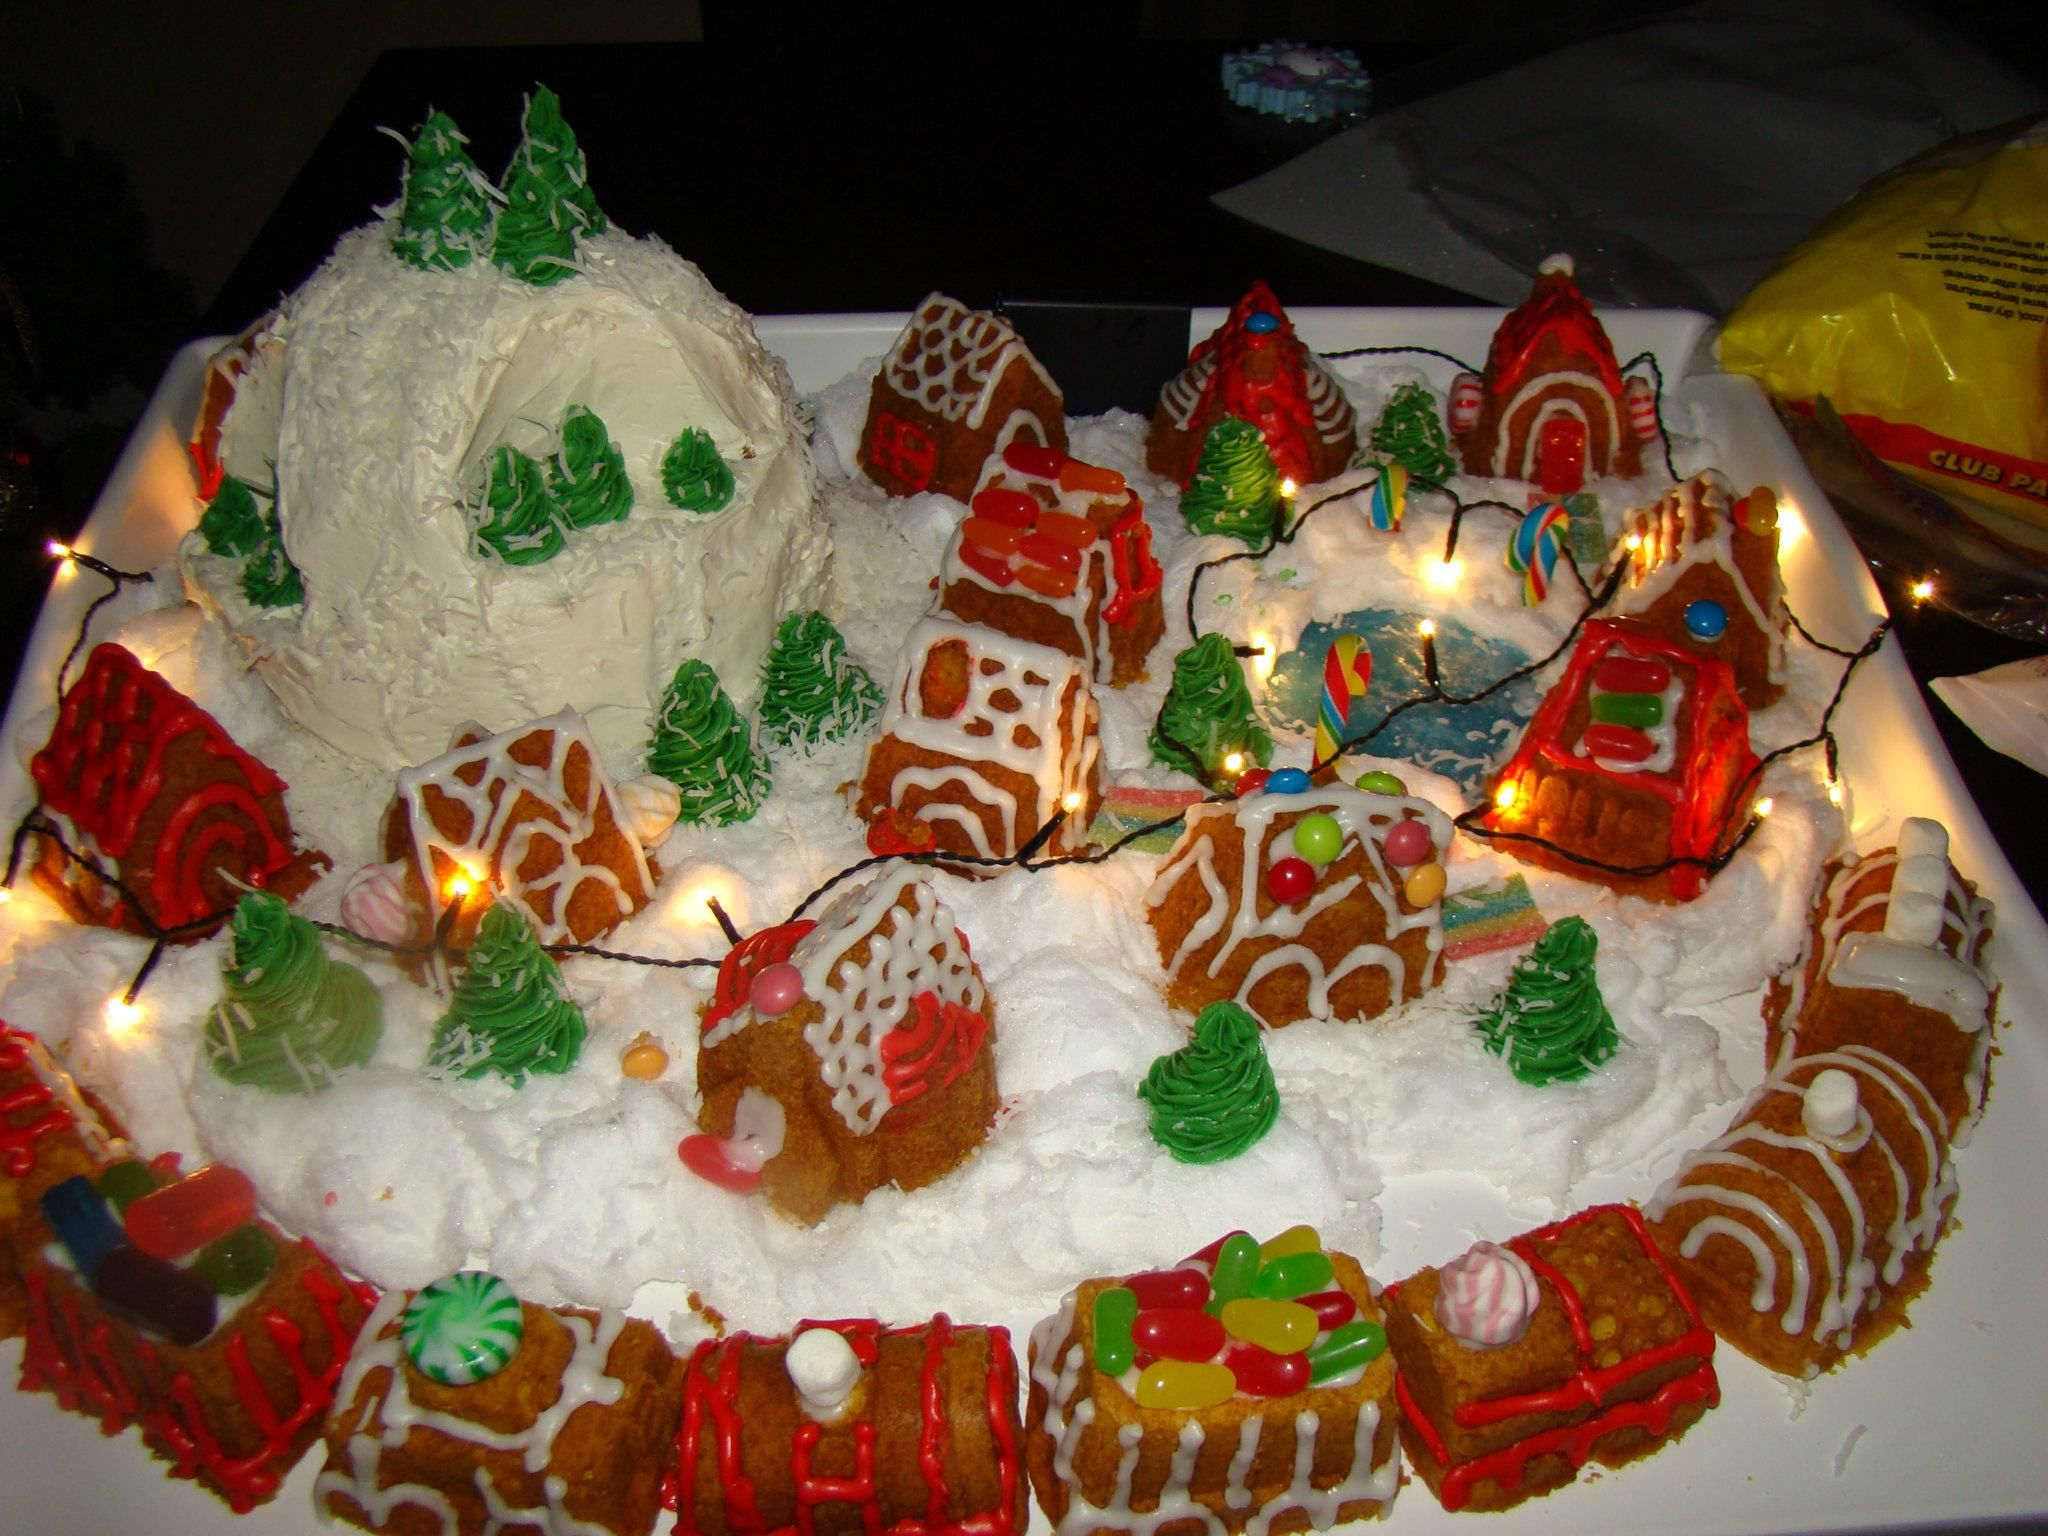 Bundt cake pans for sale - Lighted Christmas Cake Village Using Nordicware S Train And Village Cake Pans